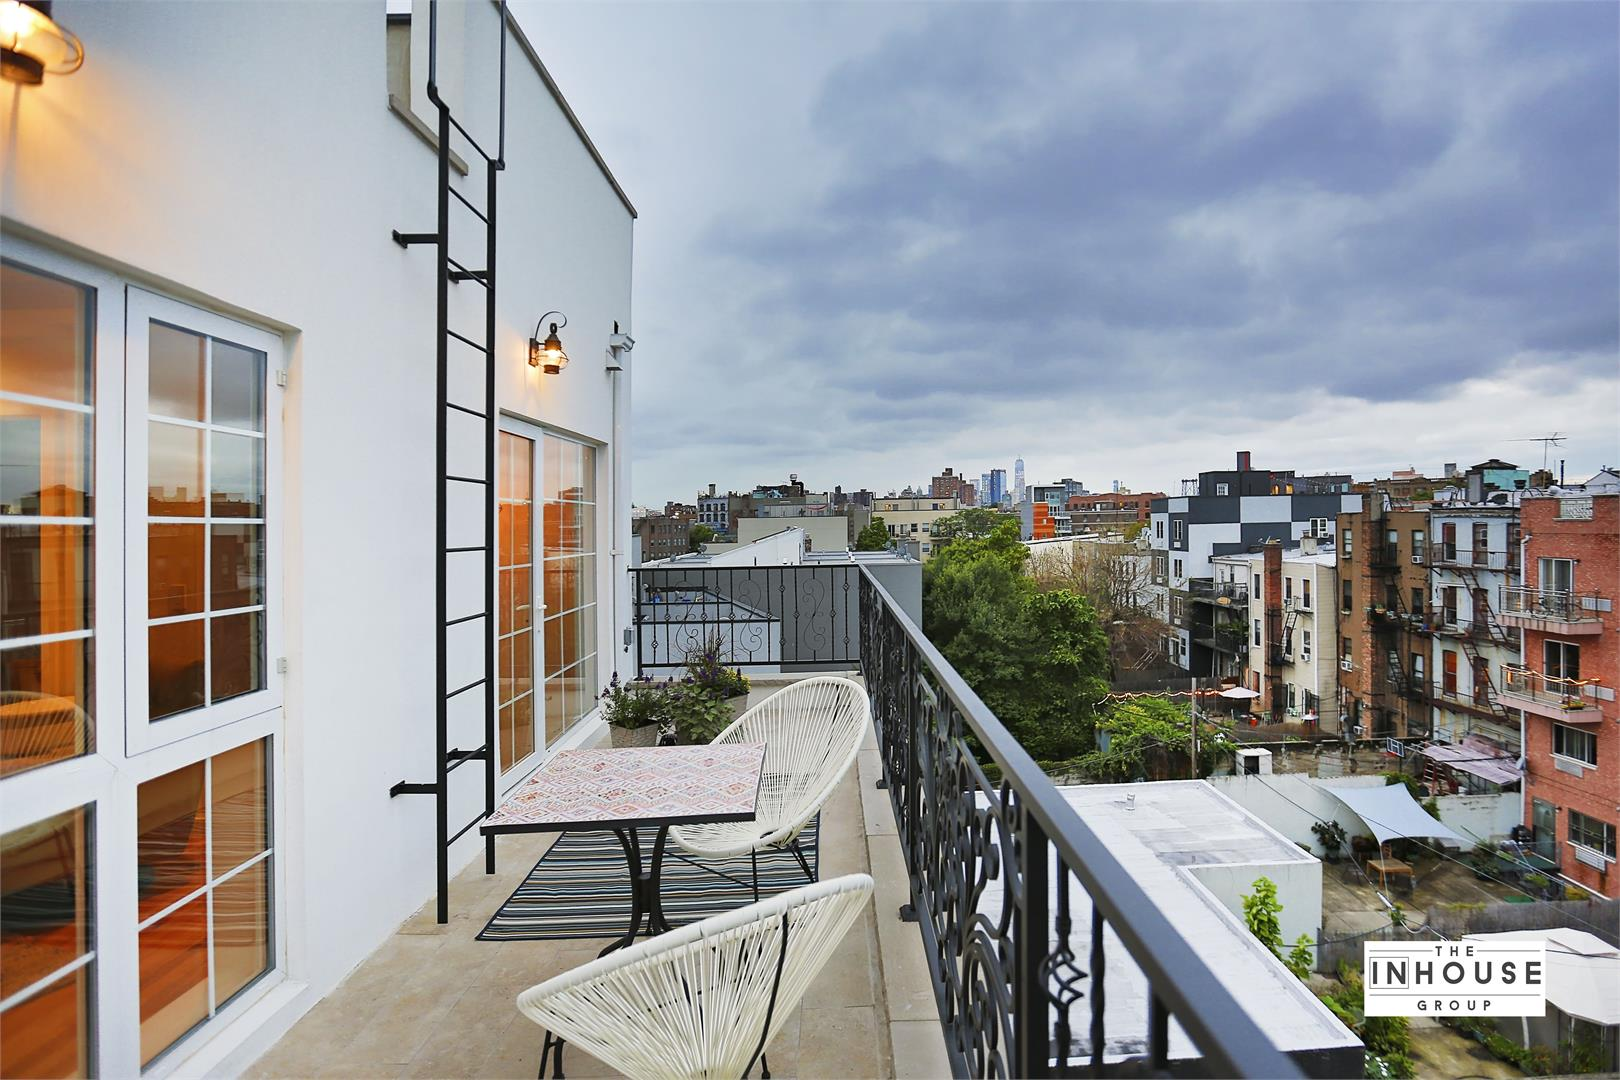 Private house in the city, the pros and cons 98